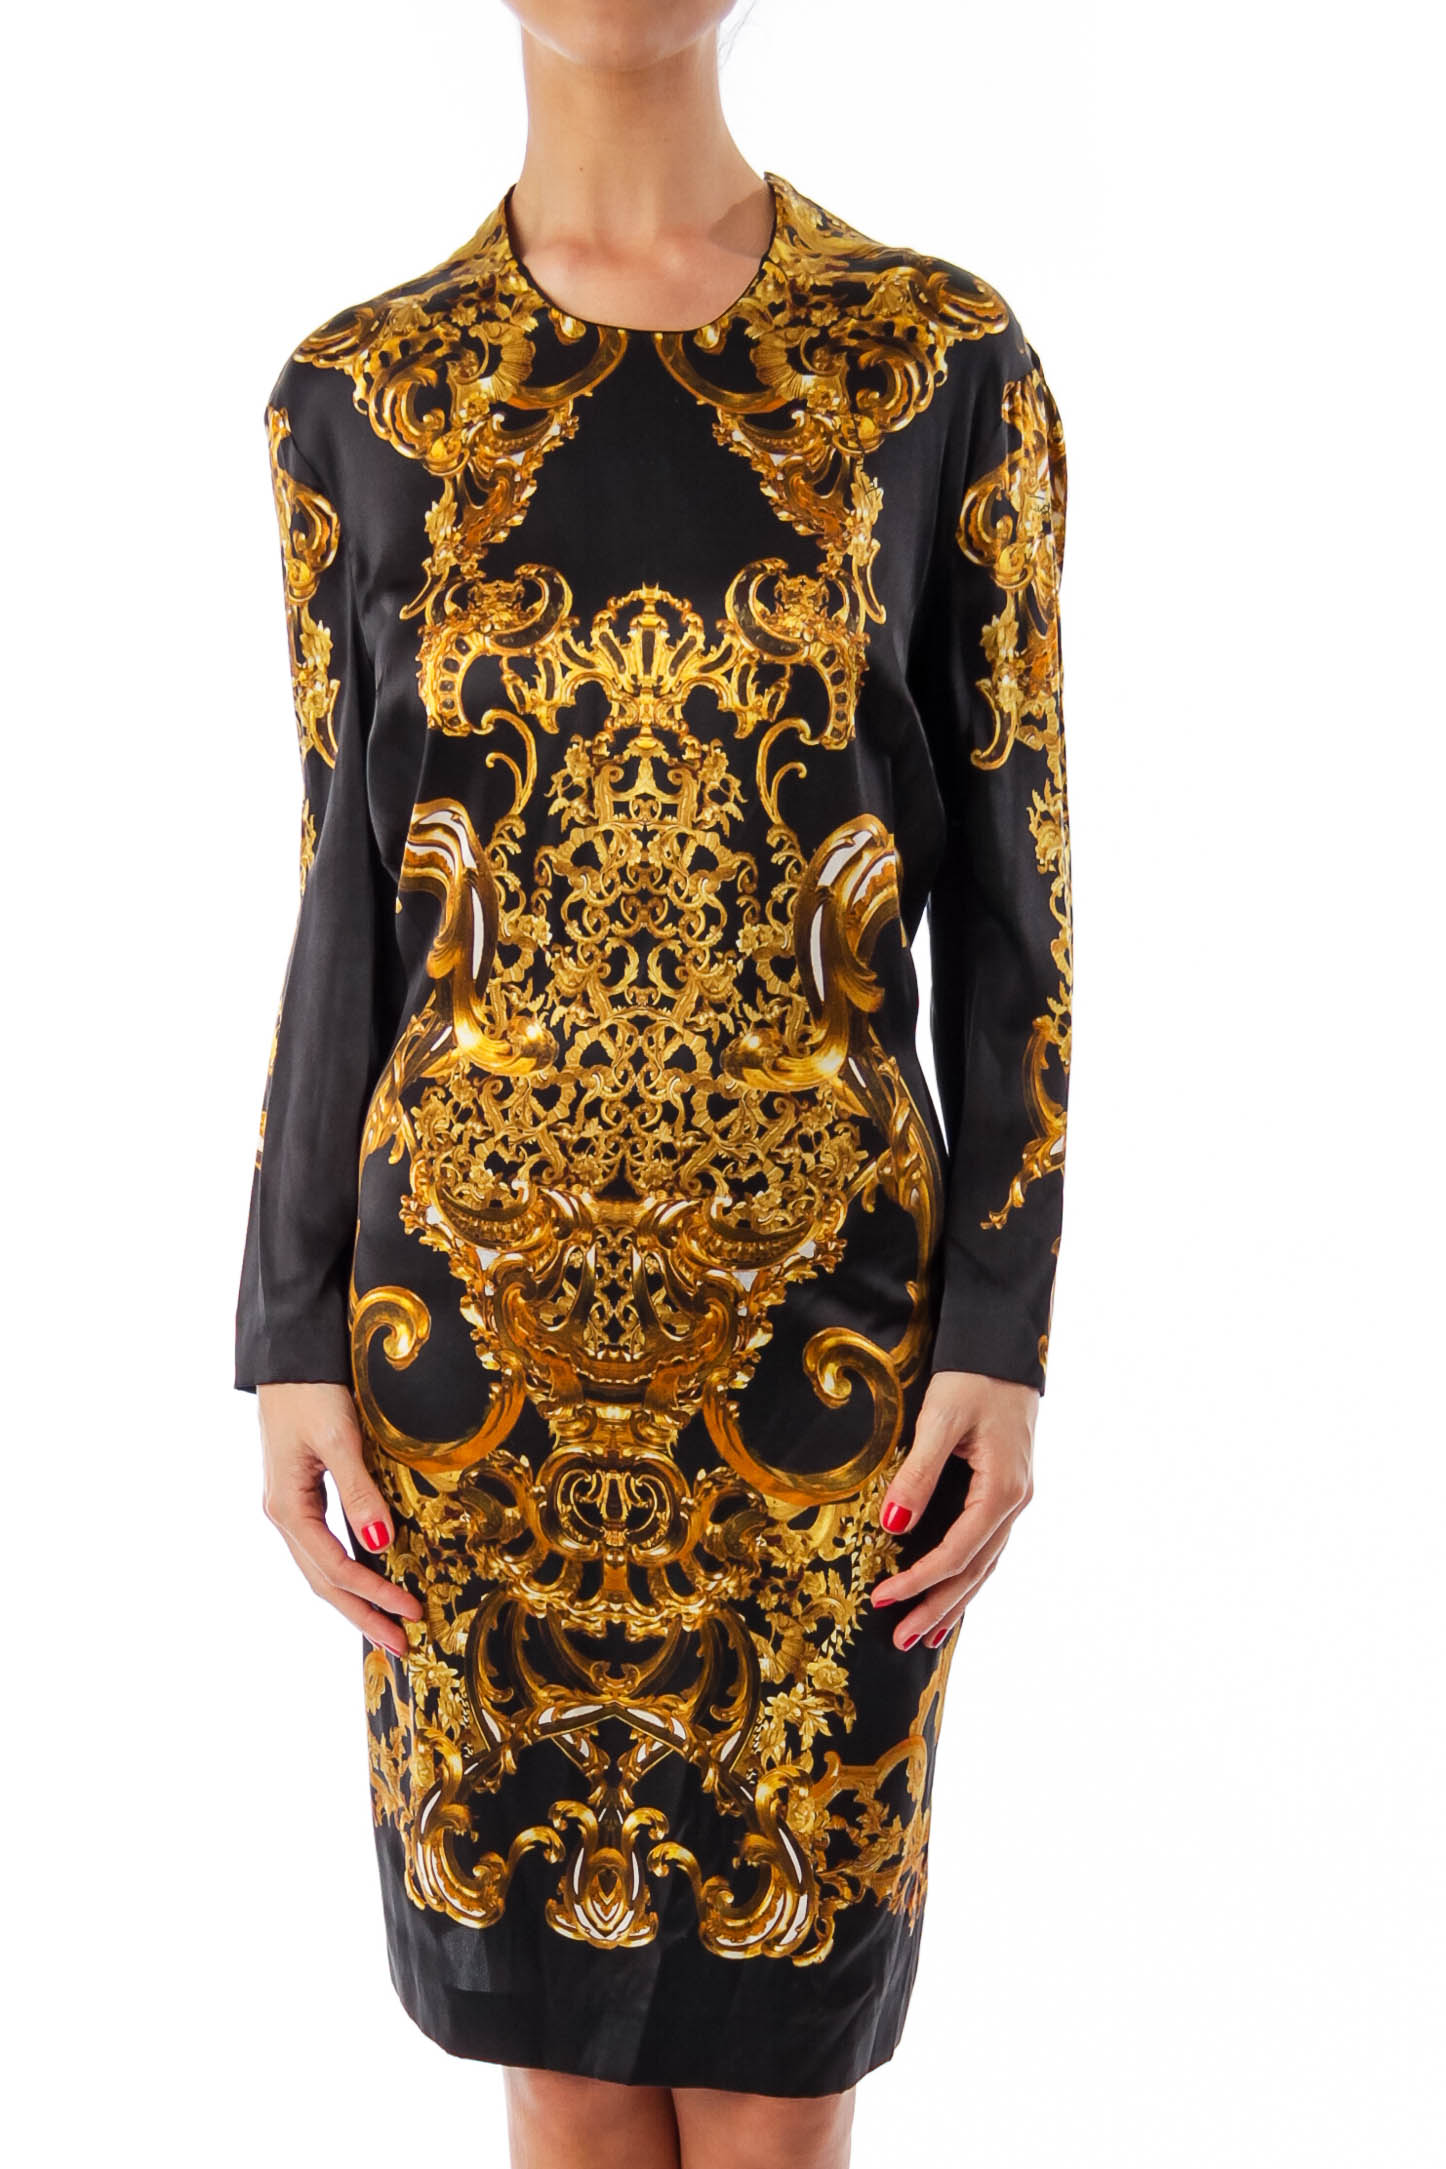 Black & Gold Print Silk Dress